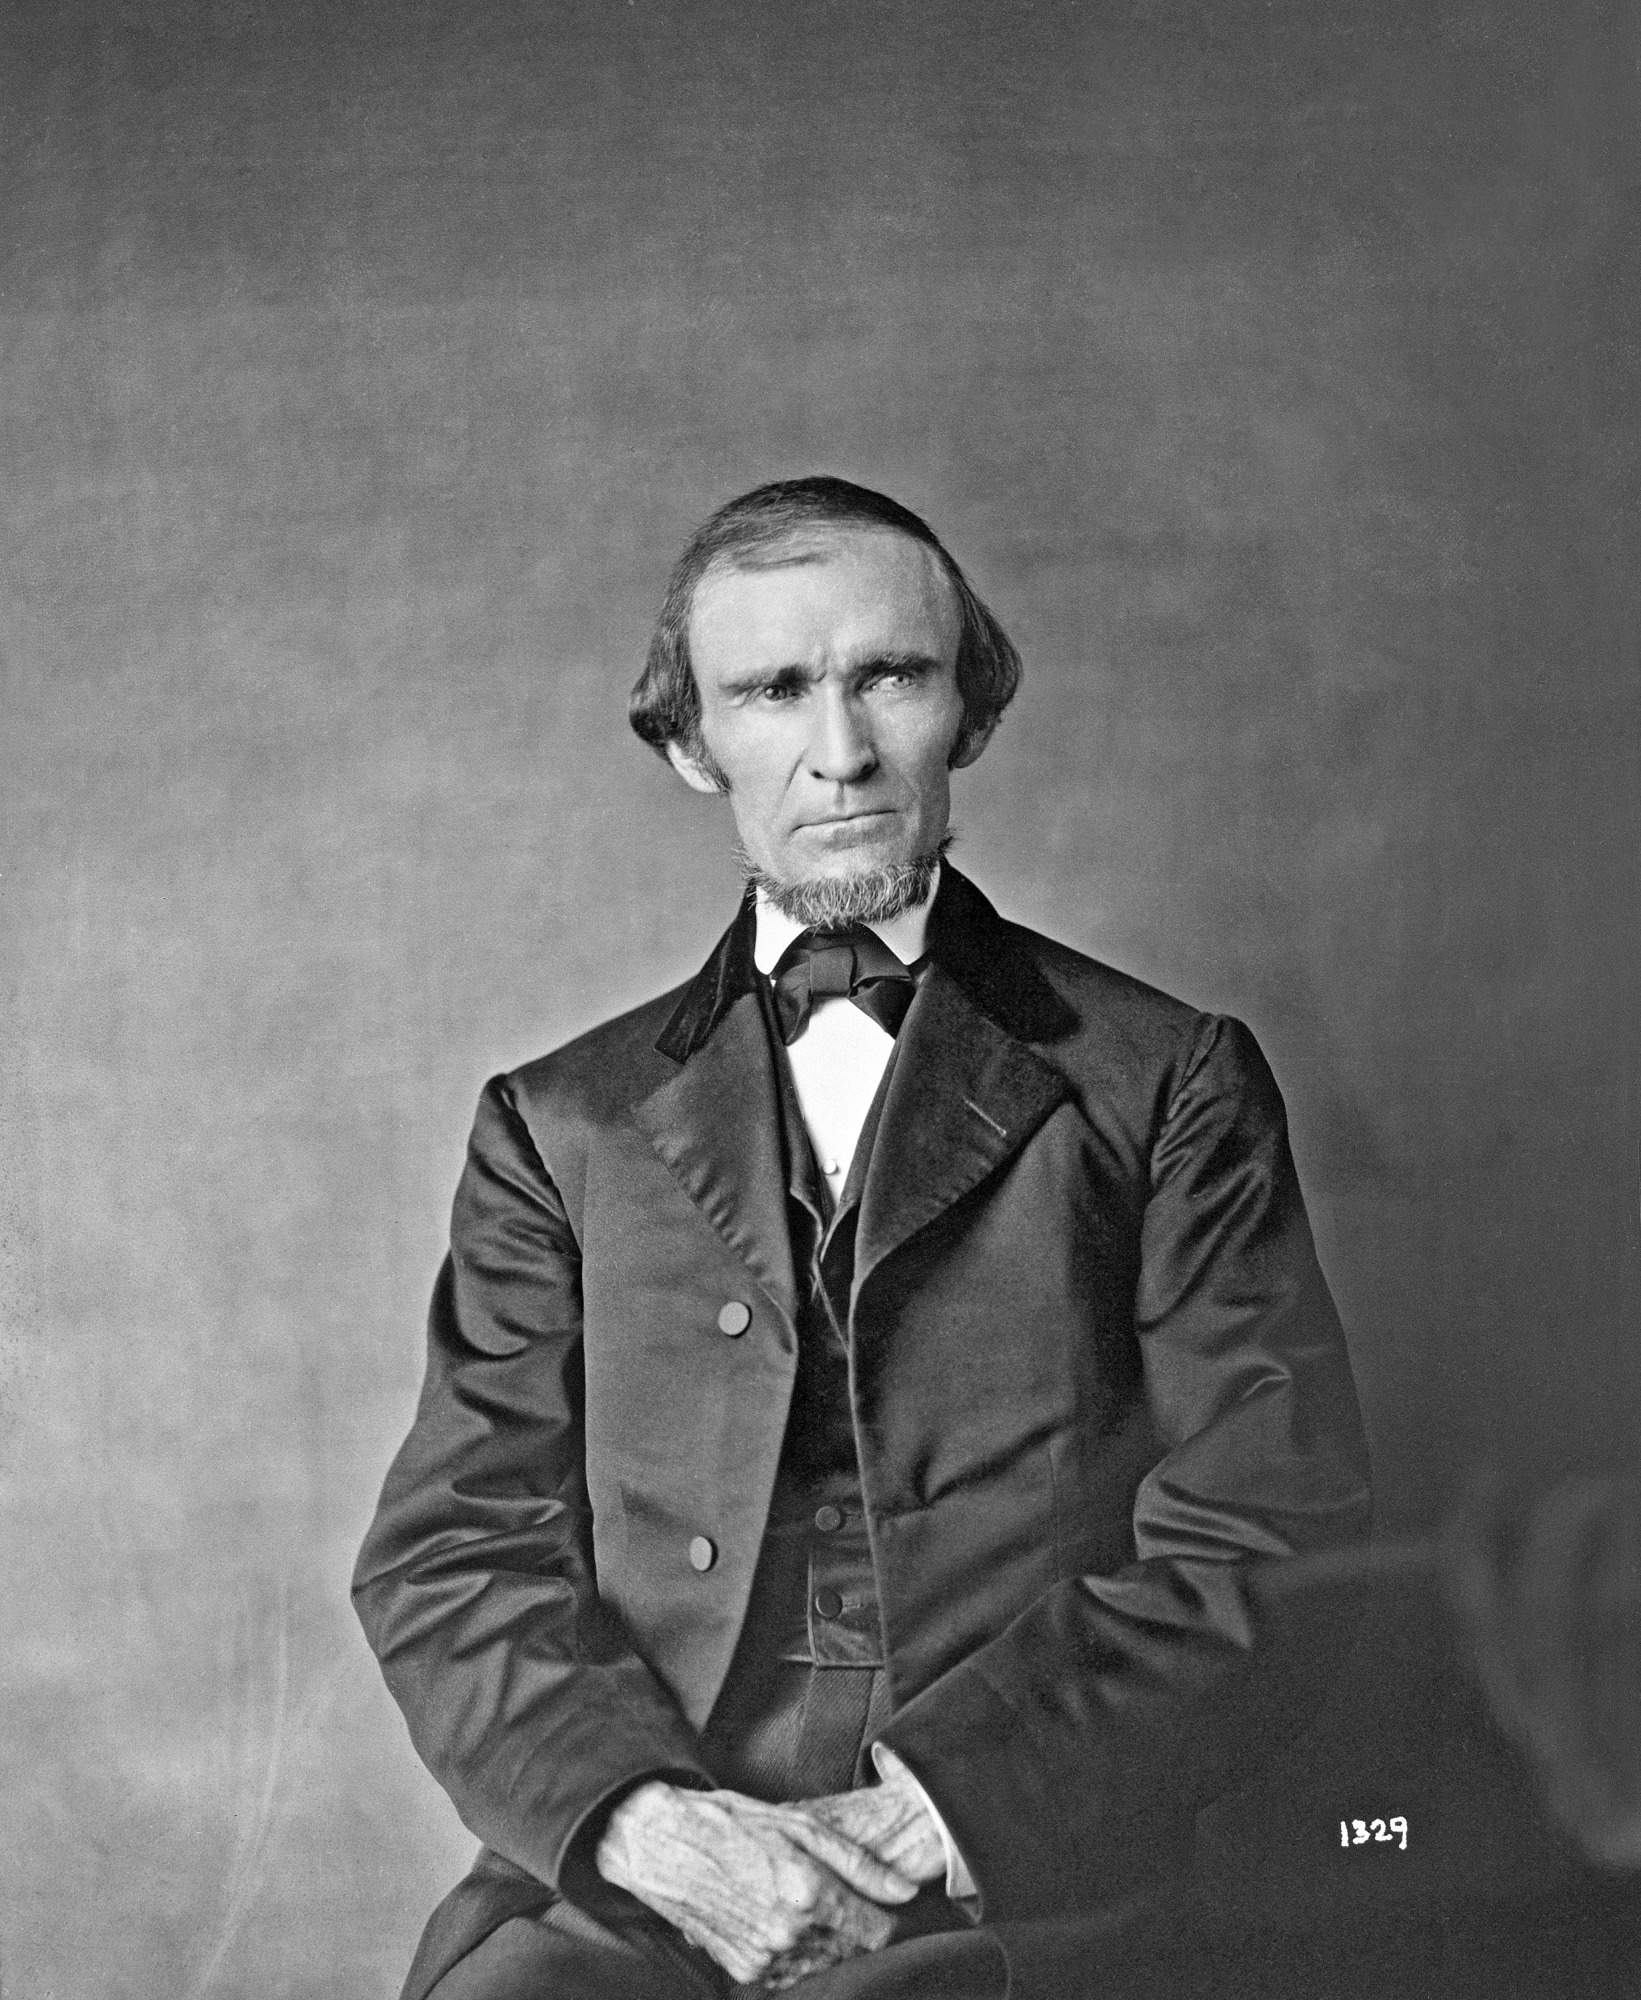 Fielding Bradford Meek, by Unknown, c. 1850s, Smithsonian Archives - History Div, 1329 or AI-1329.